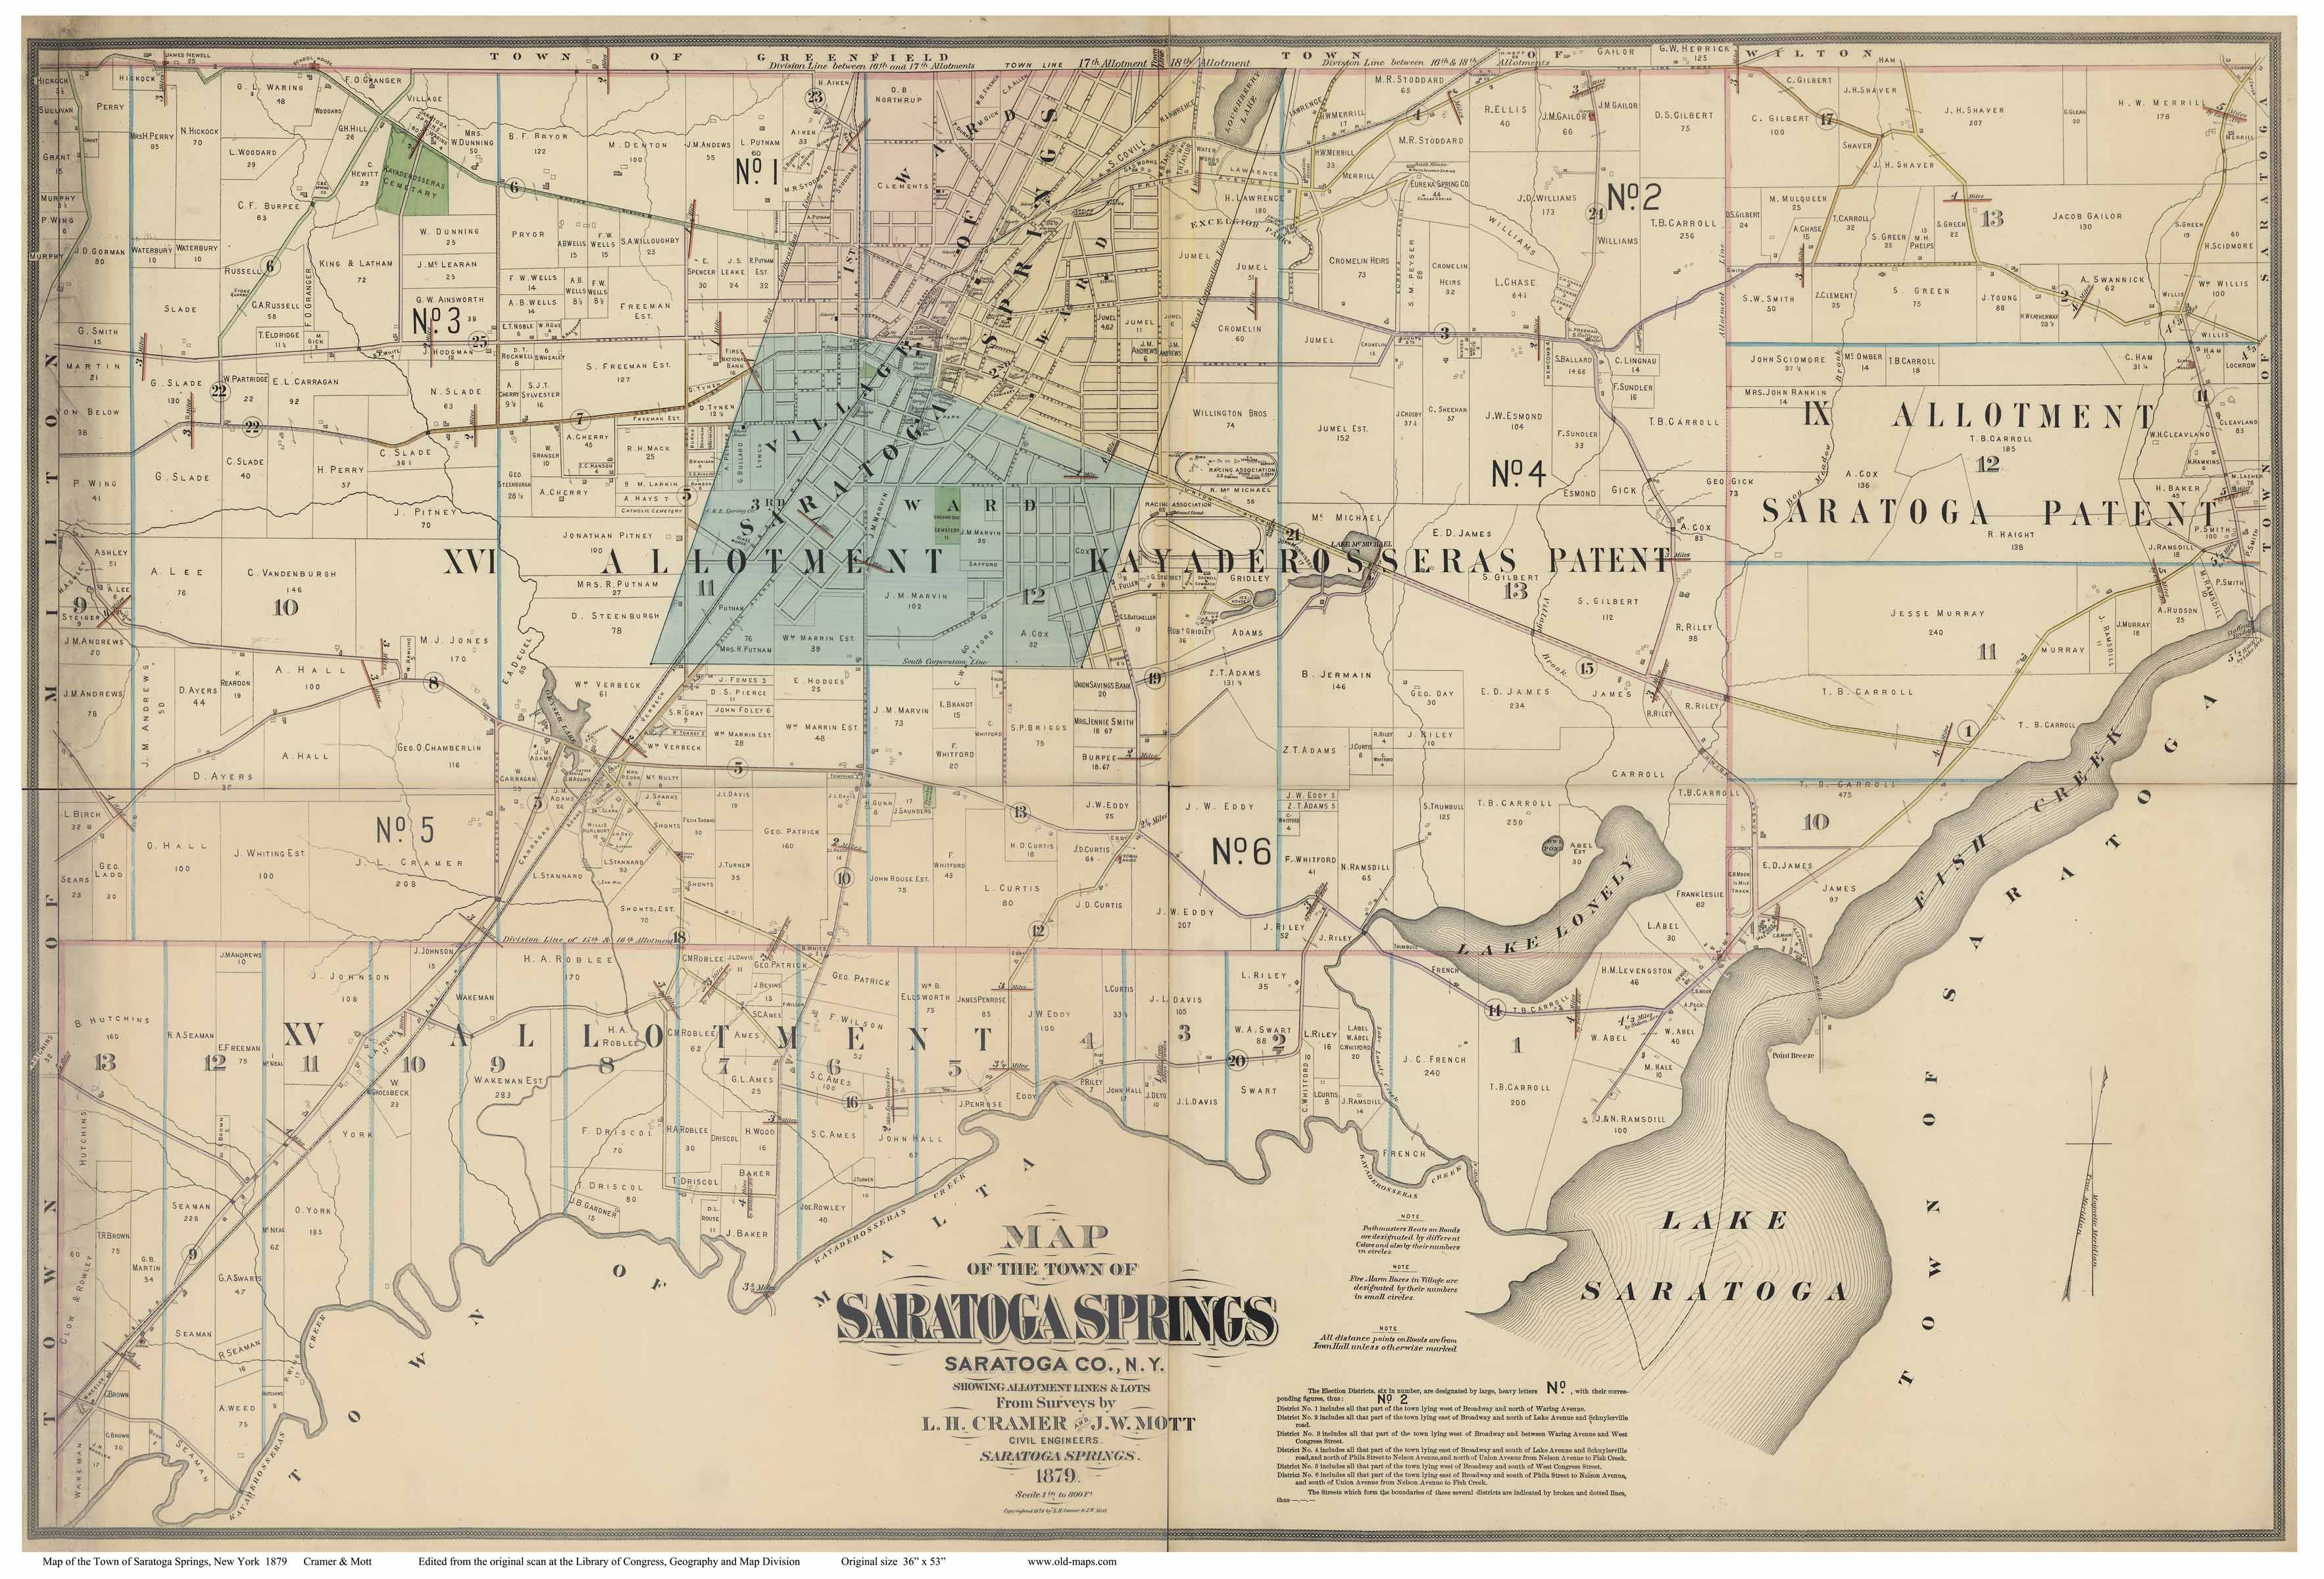 town map of saratoga springs new york. prints of old new york state maps